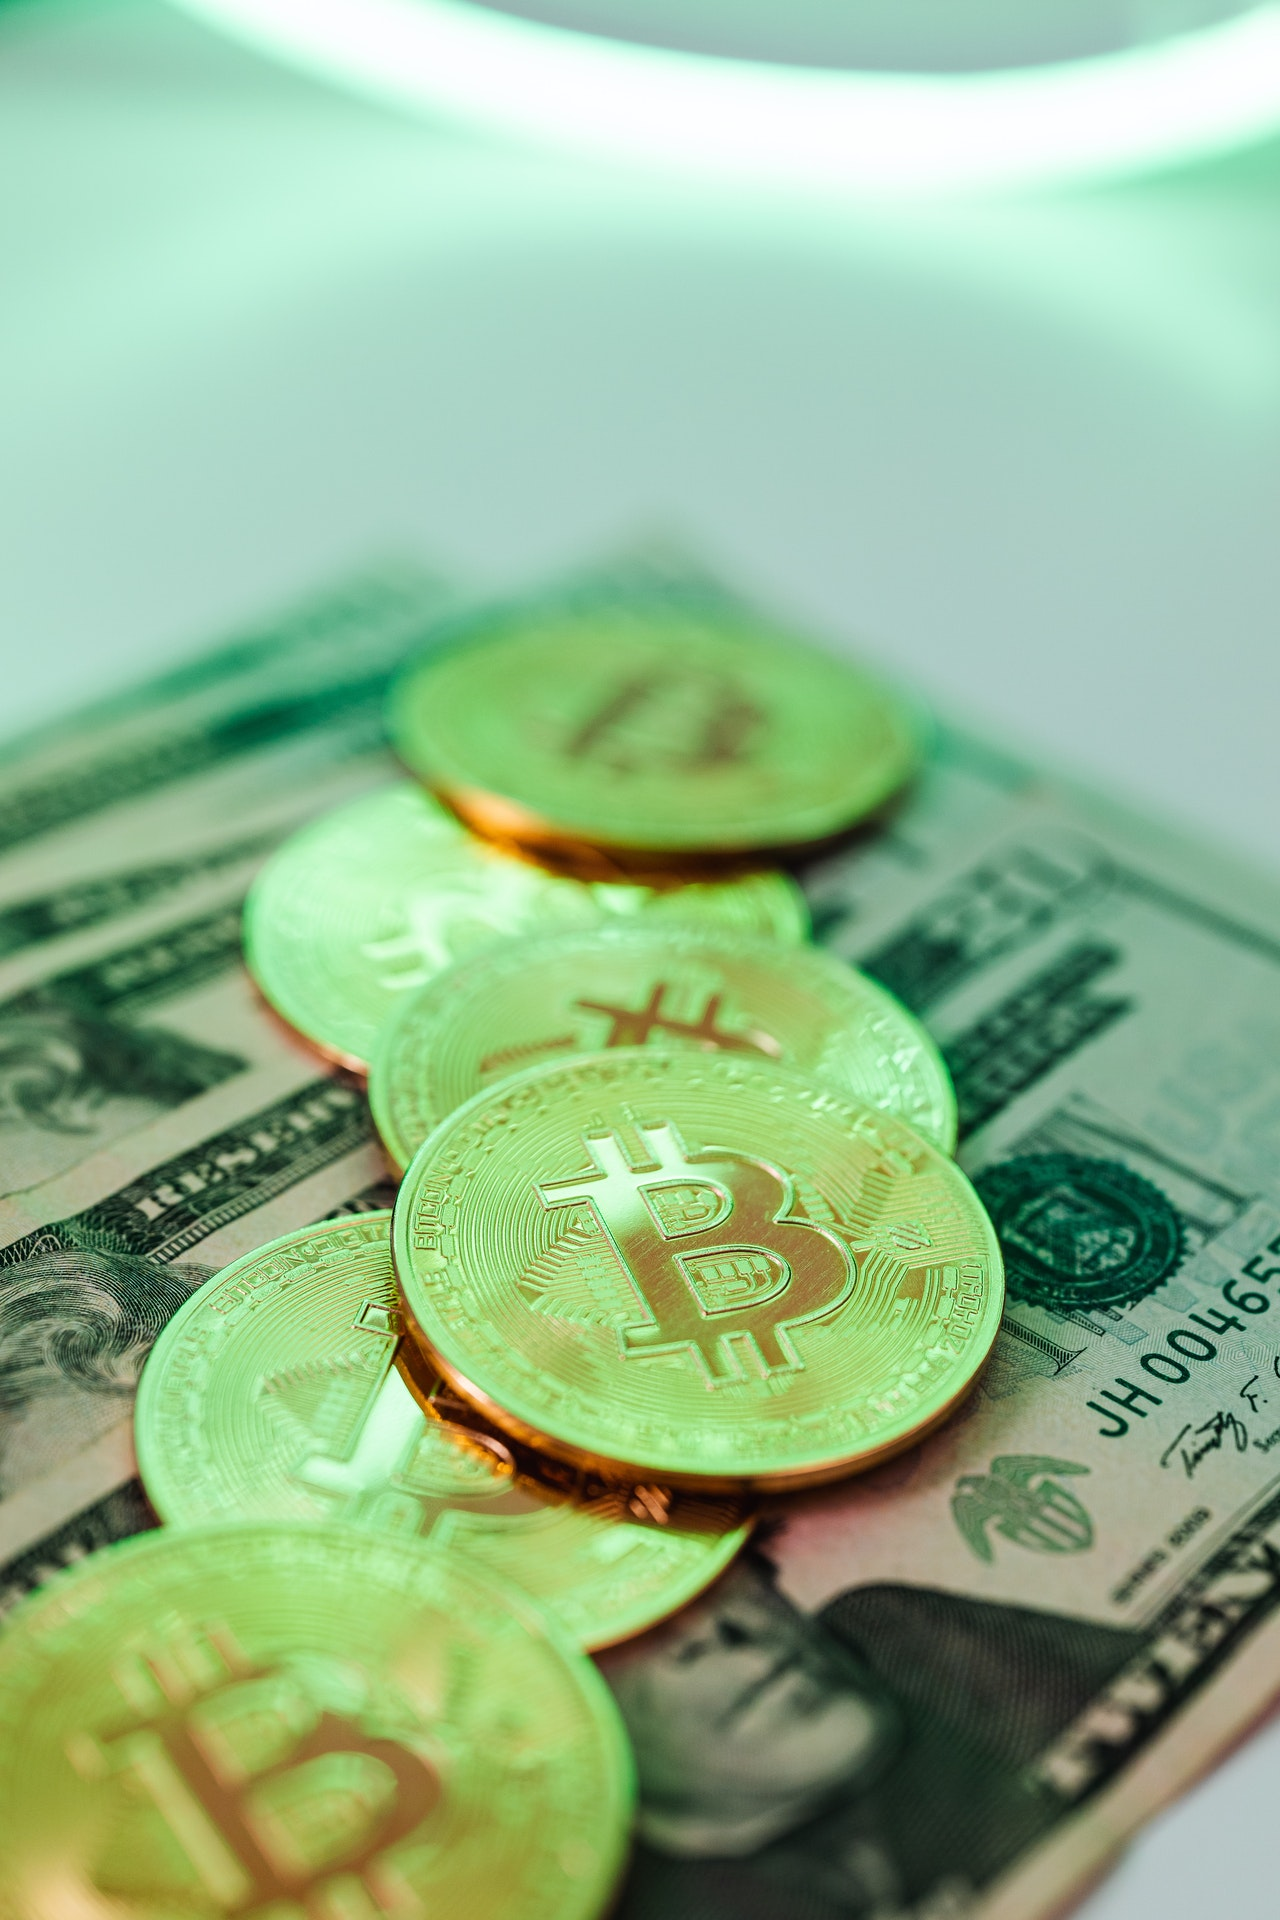 ¨Risks Bitcoin Investment Article Image